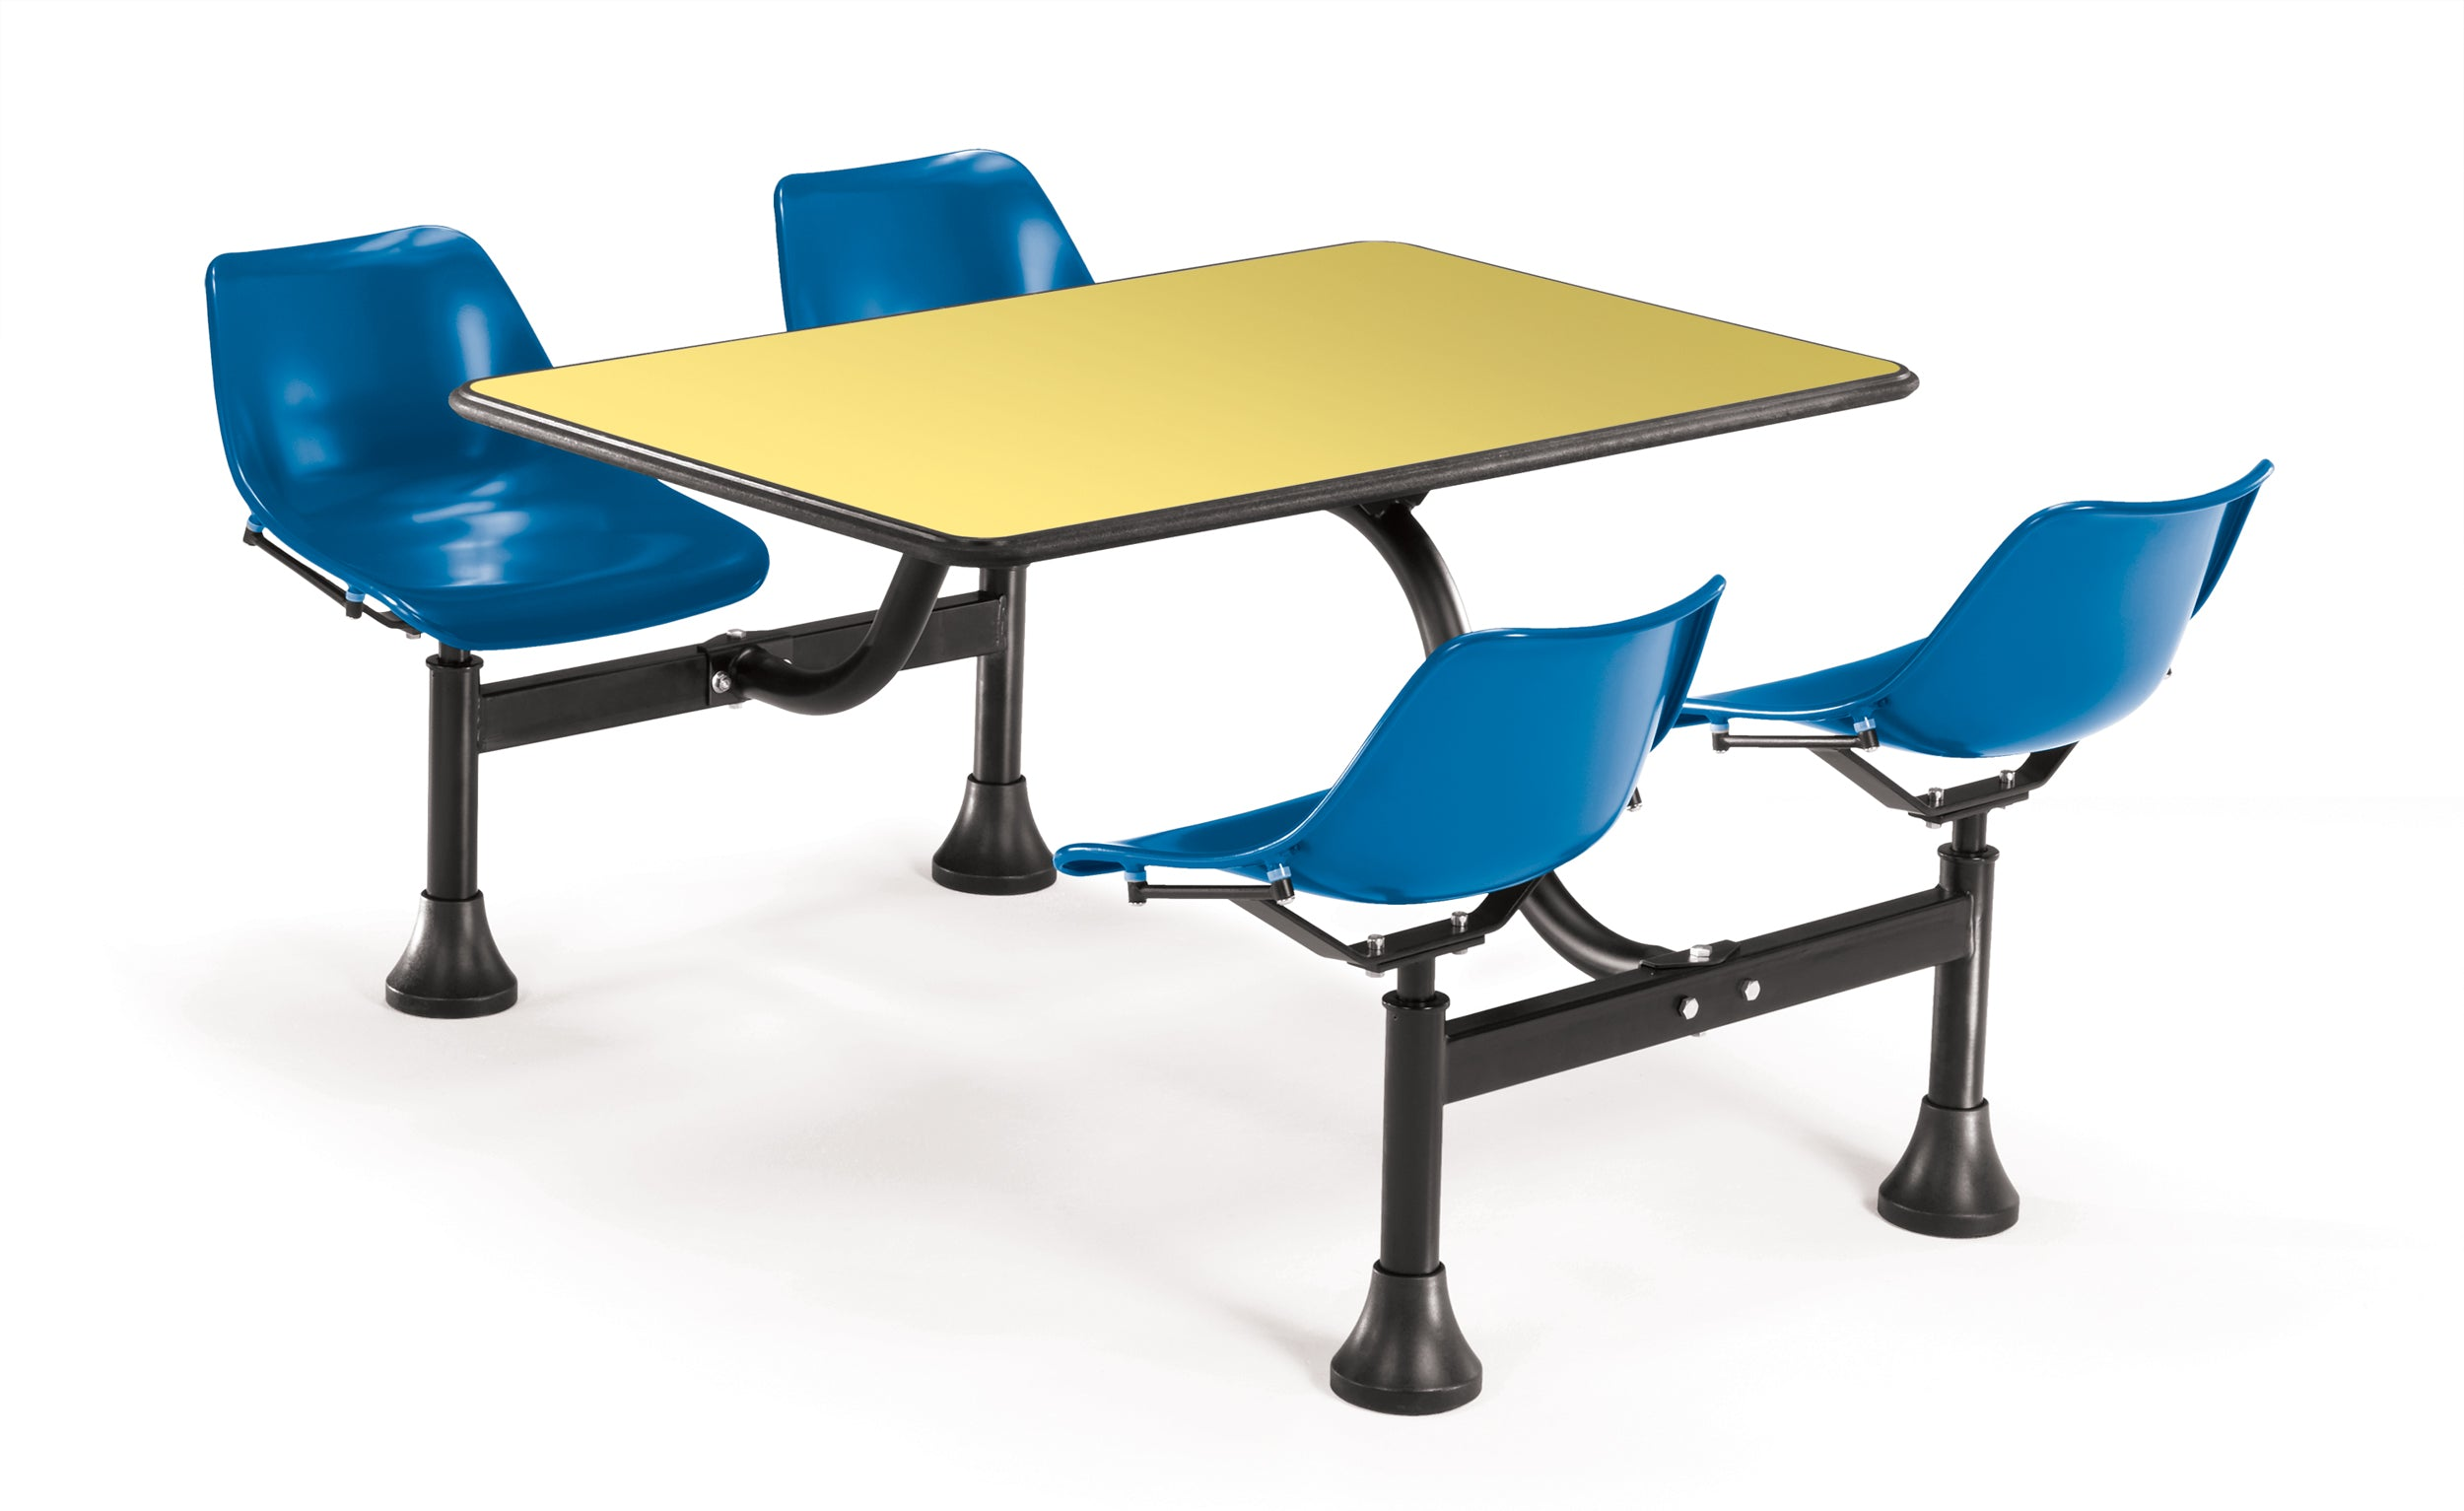 Model 1002 Cluster Table & Chairs Blue Seat 24 Inch x 48 Inch Top